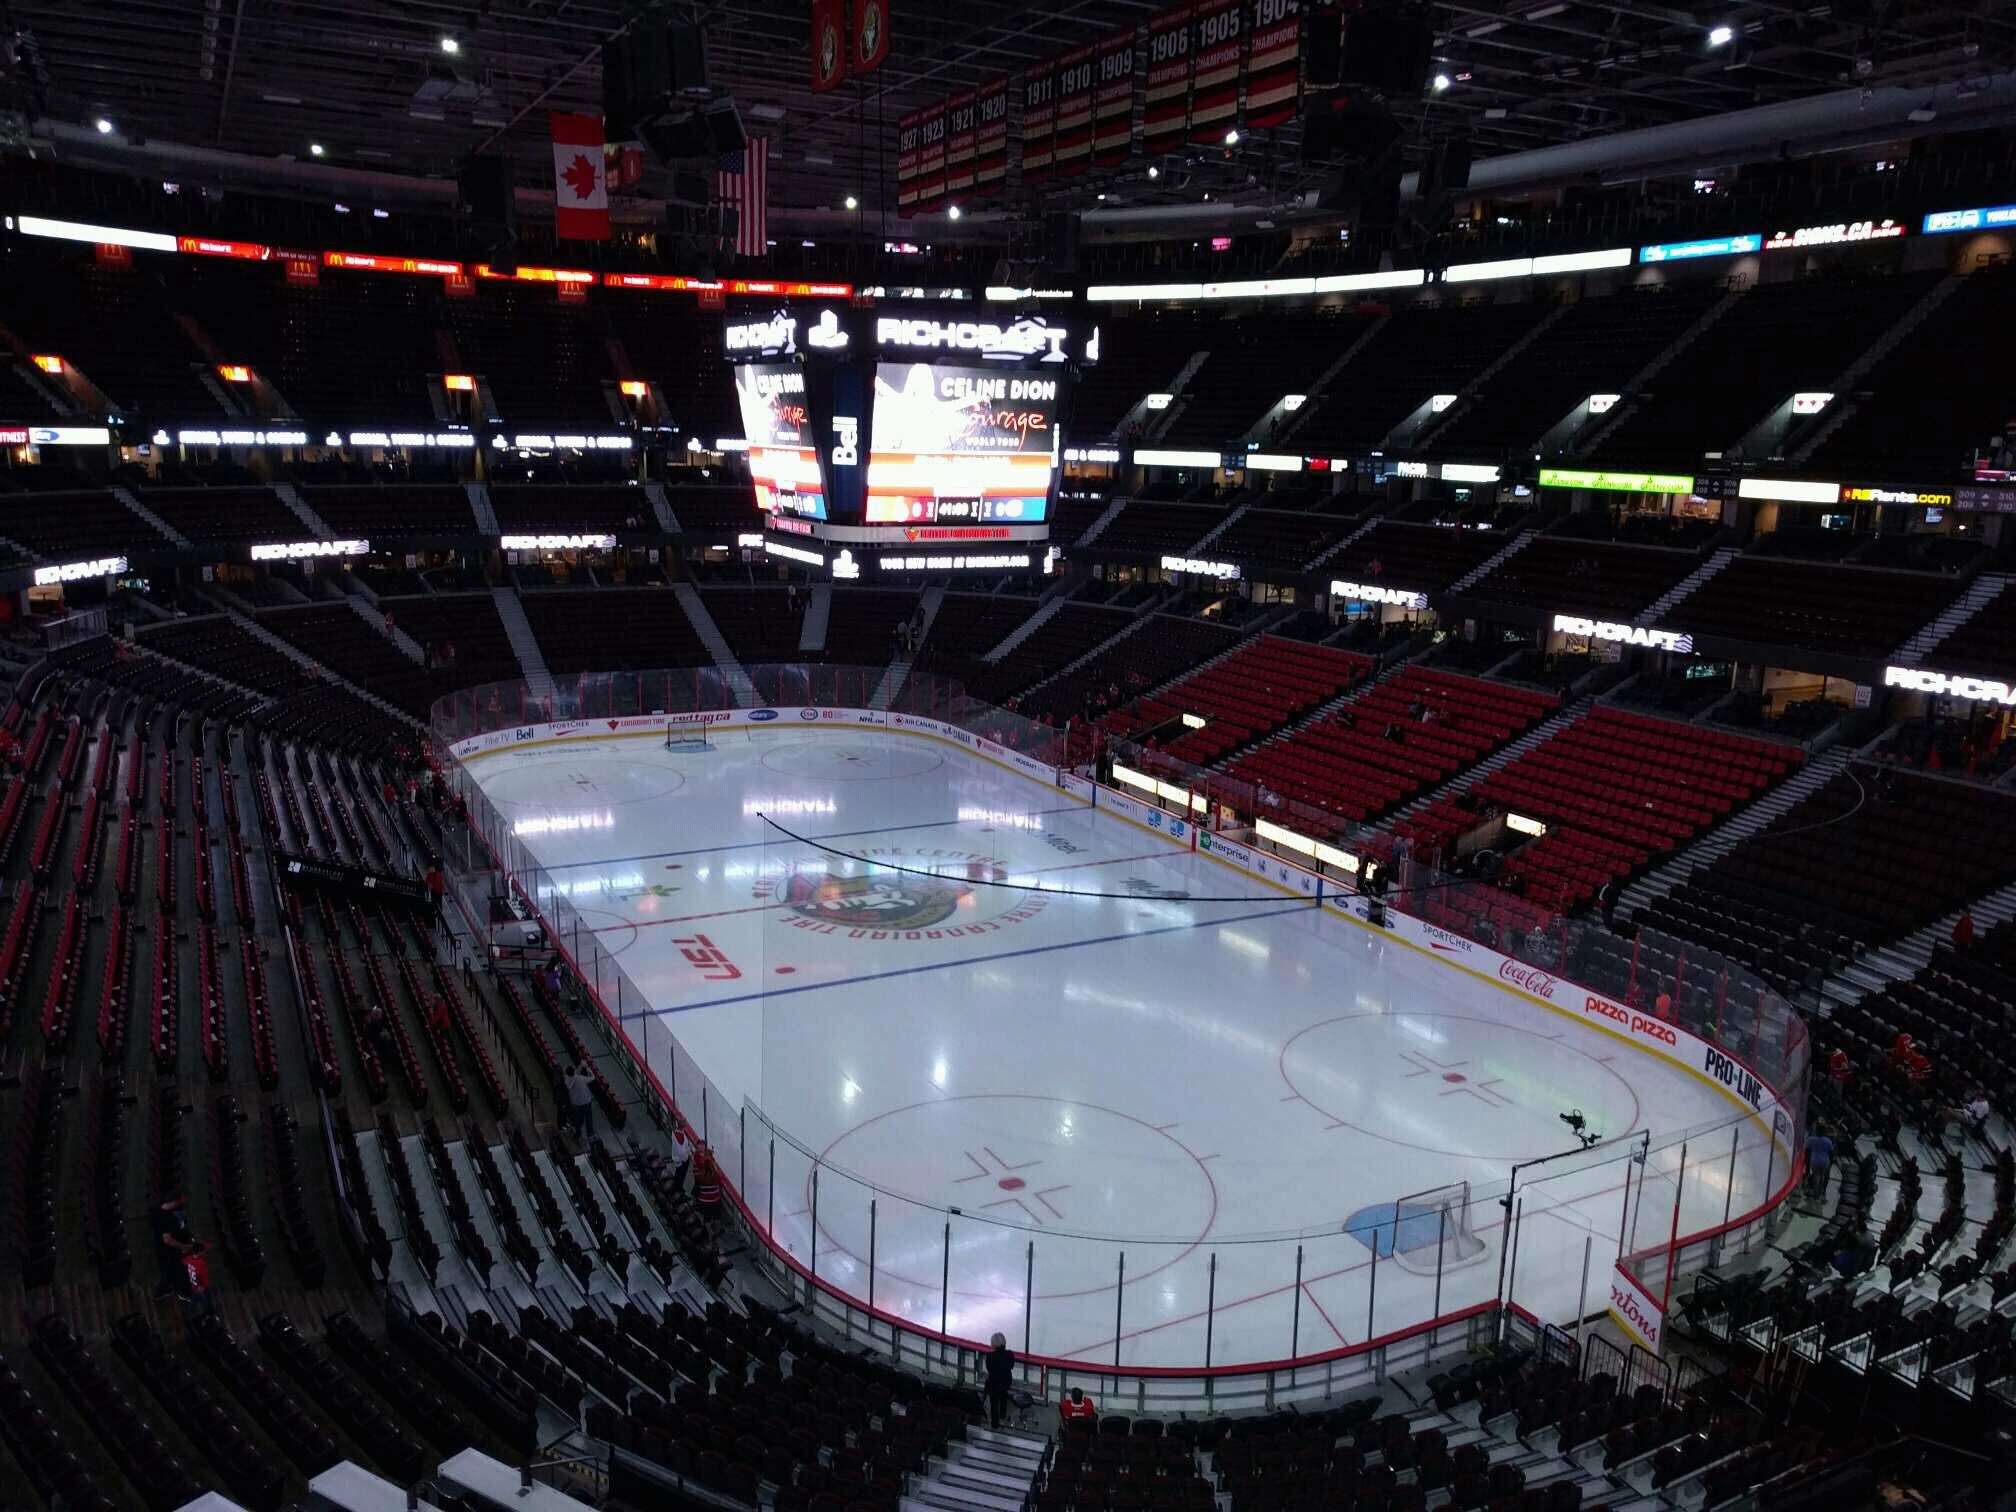 Canadian Tire Centre Section 317 Row b Seat 7